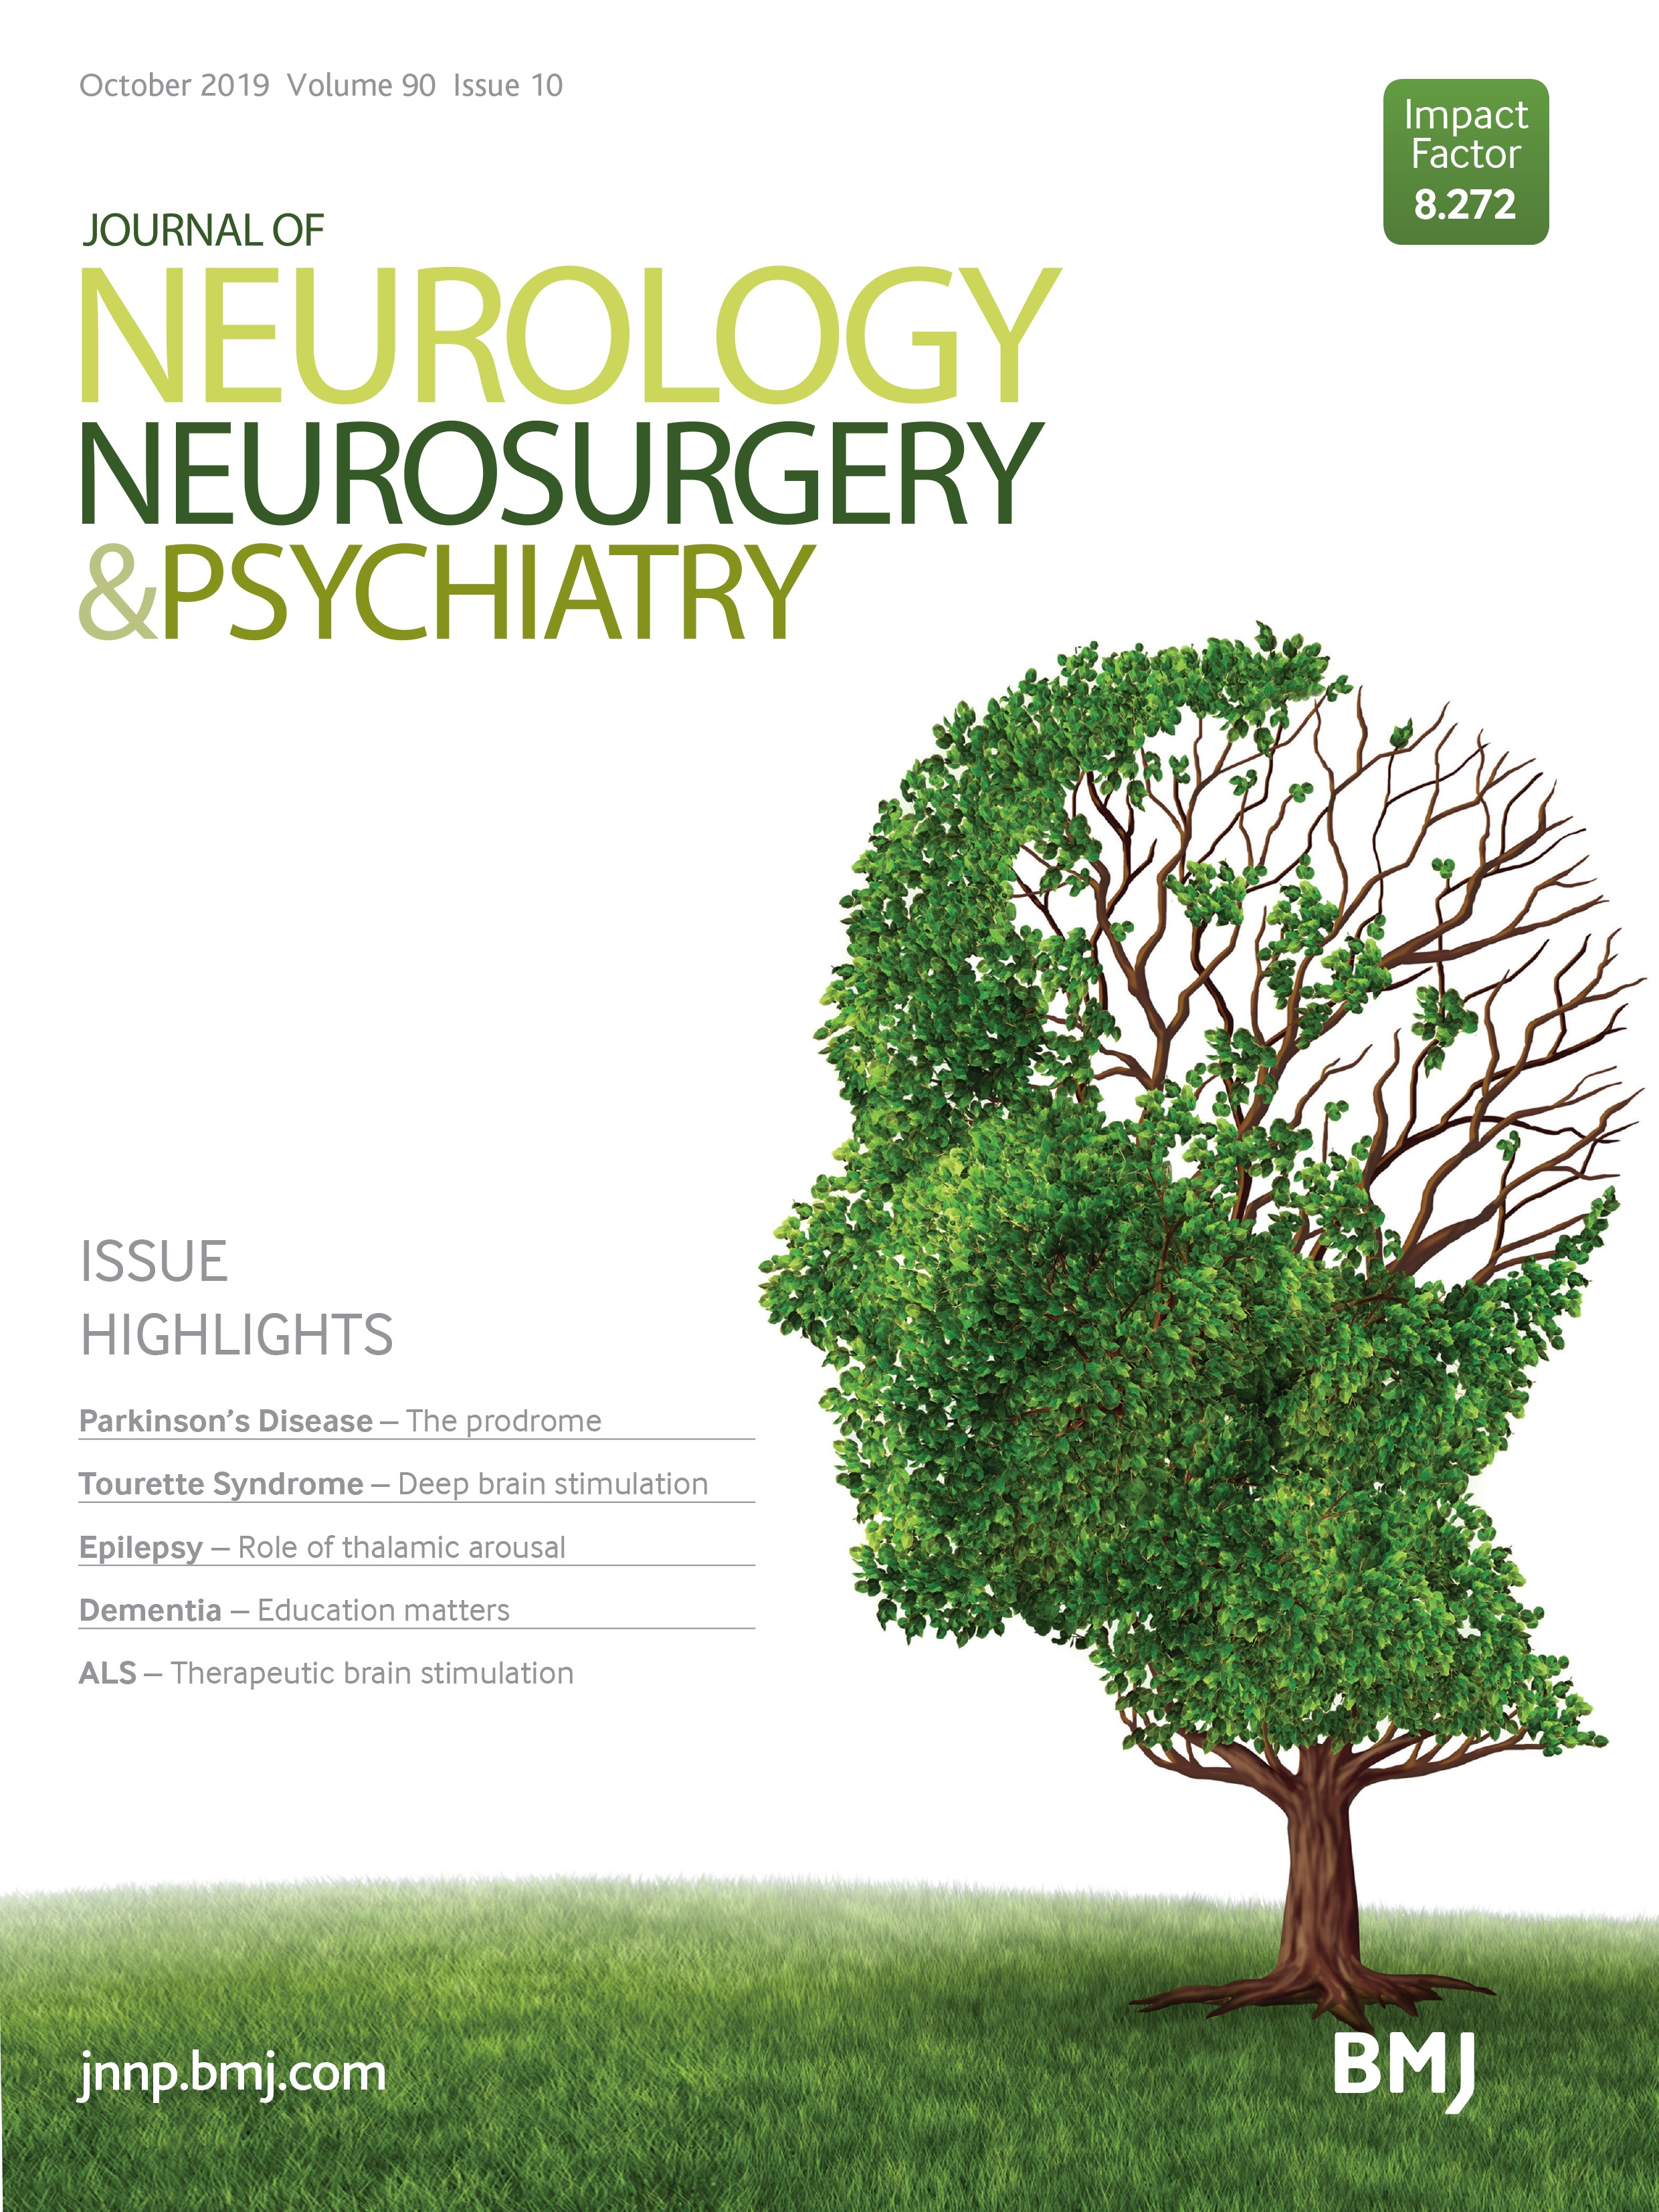 Attack-related damage of thalamic nuclei in neuromyelitis